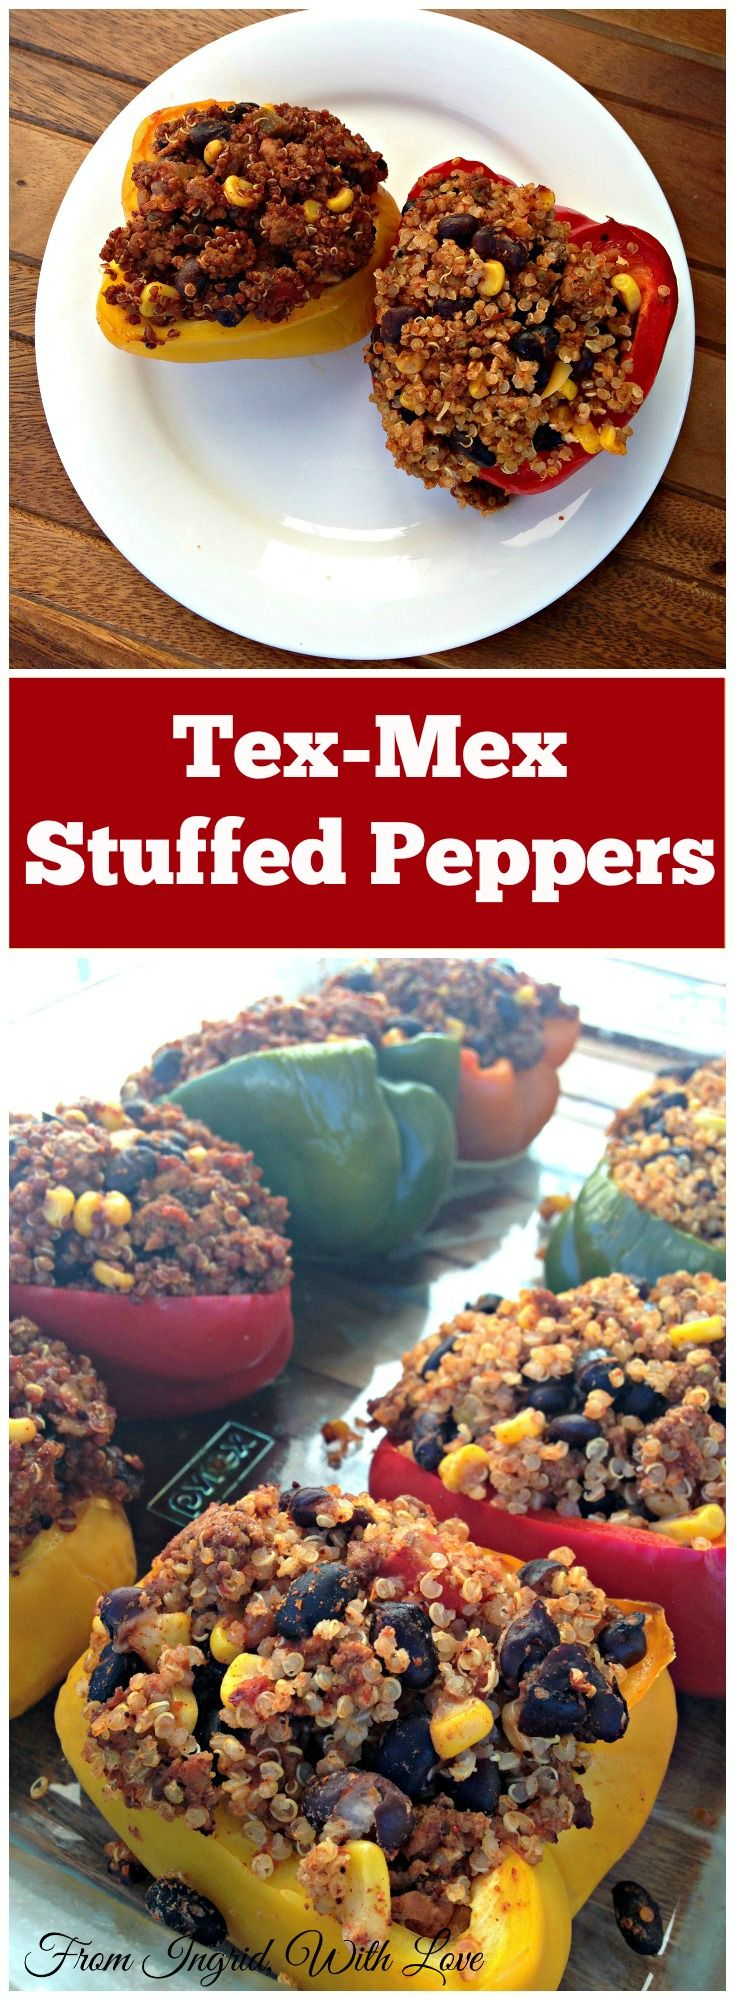 Tex-Mex Stuffed Peppers with all the bright and bold Southwestern flavors you love, packed with nutritious ingredients for an indulgent, but lean dinner. | From Ingrid, With Love